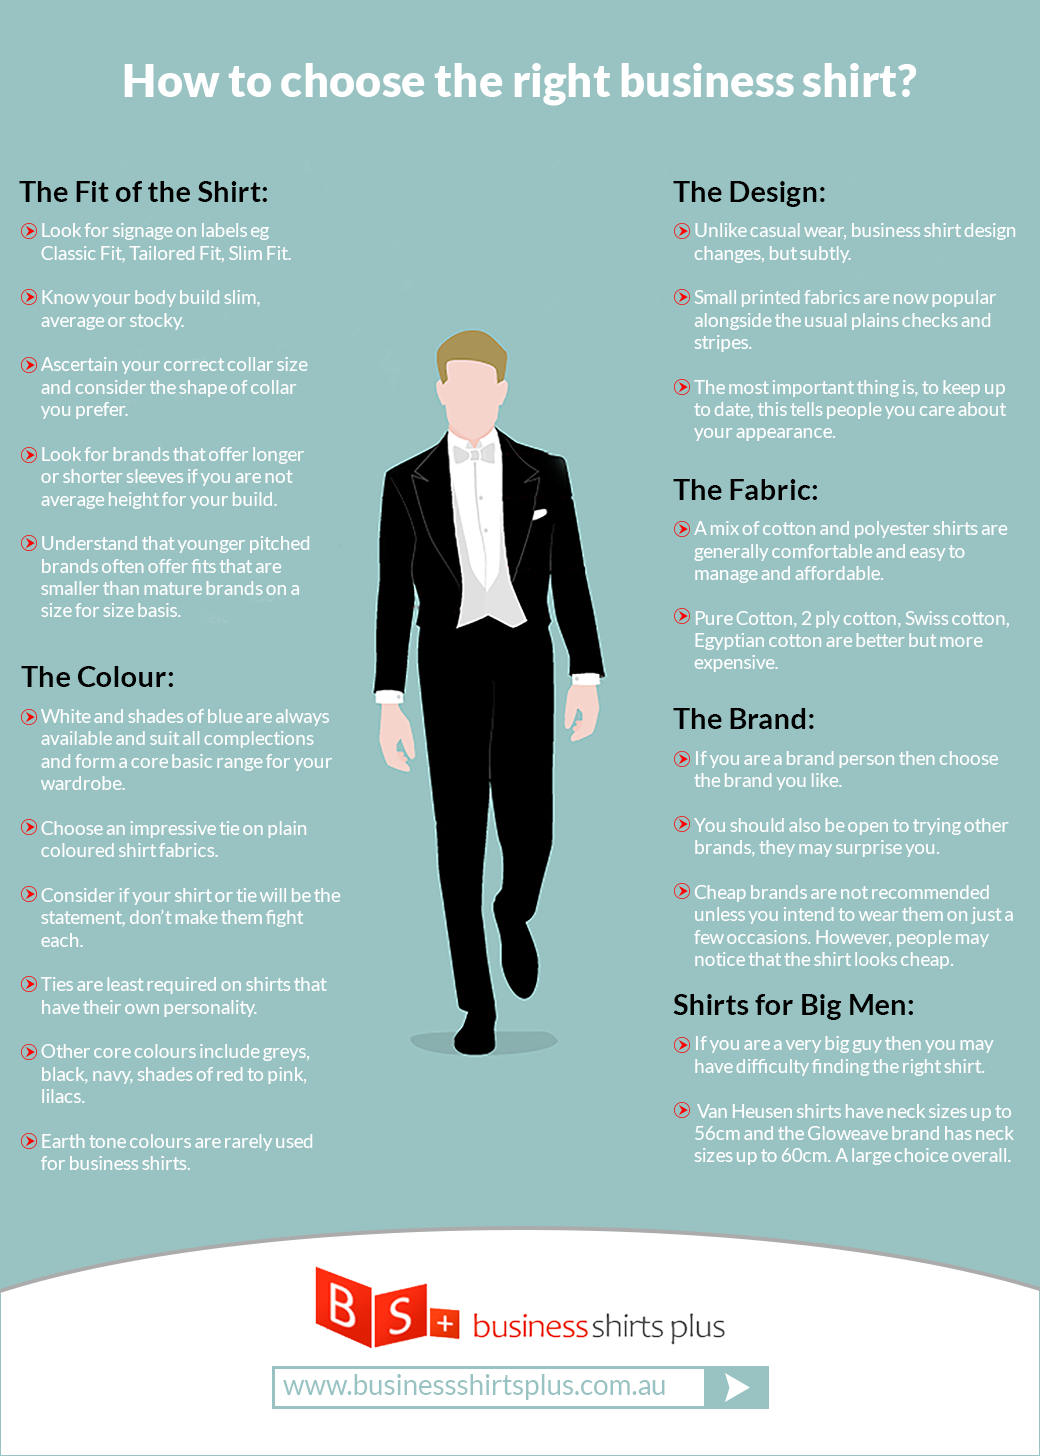 How To Choose Right Business Shirt